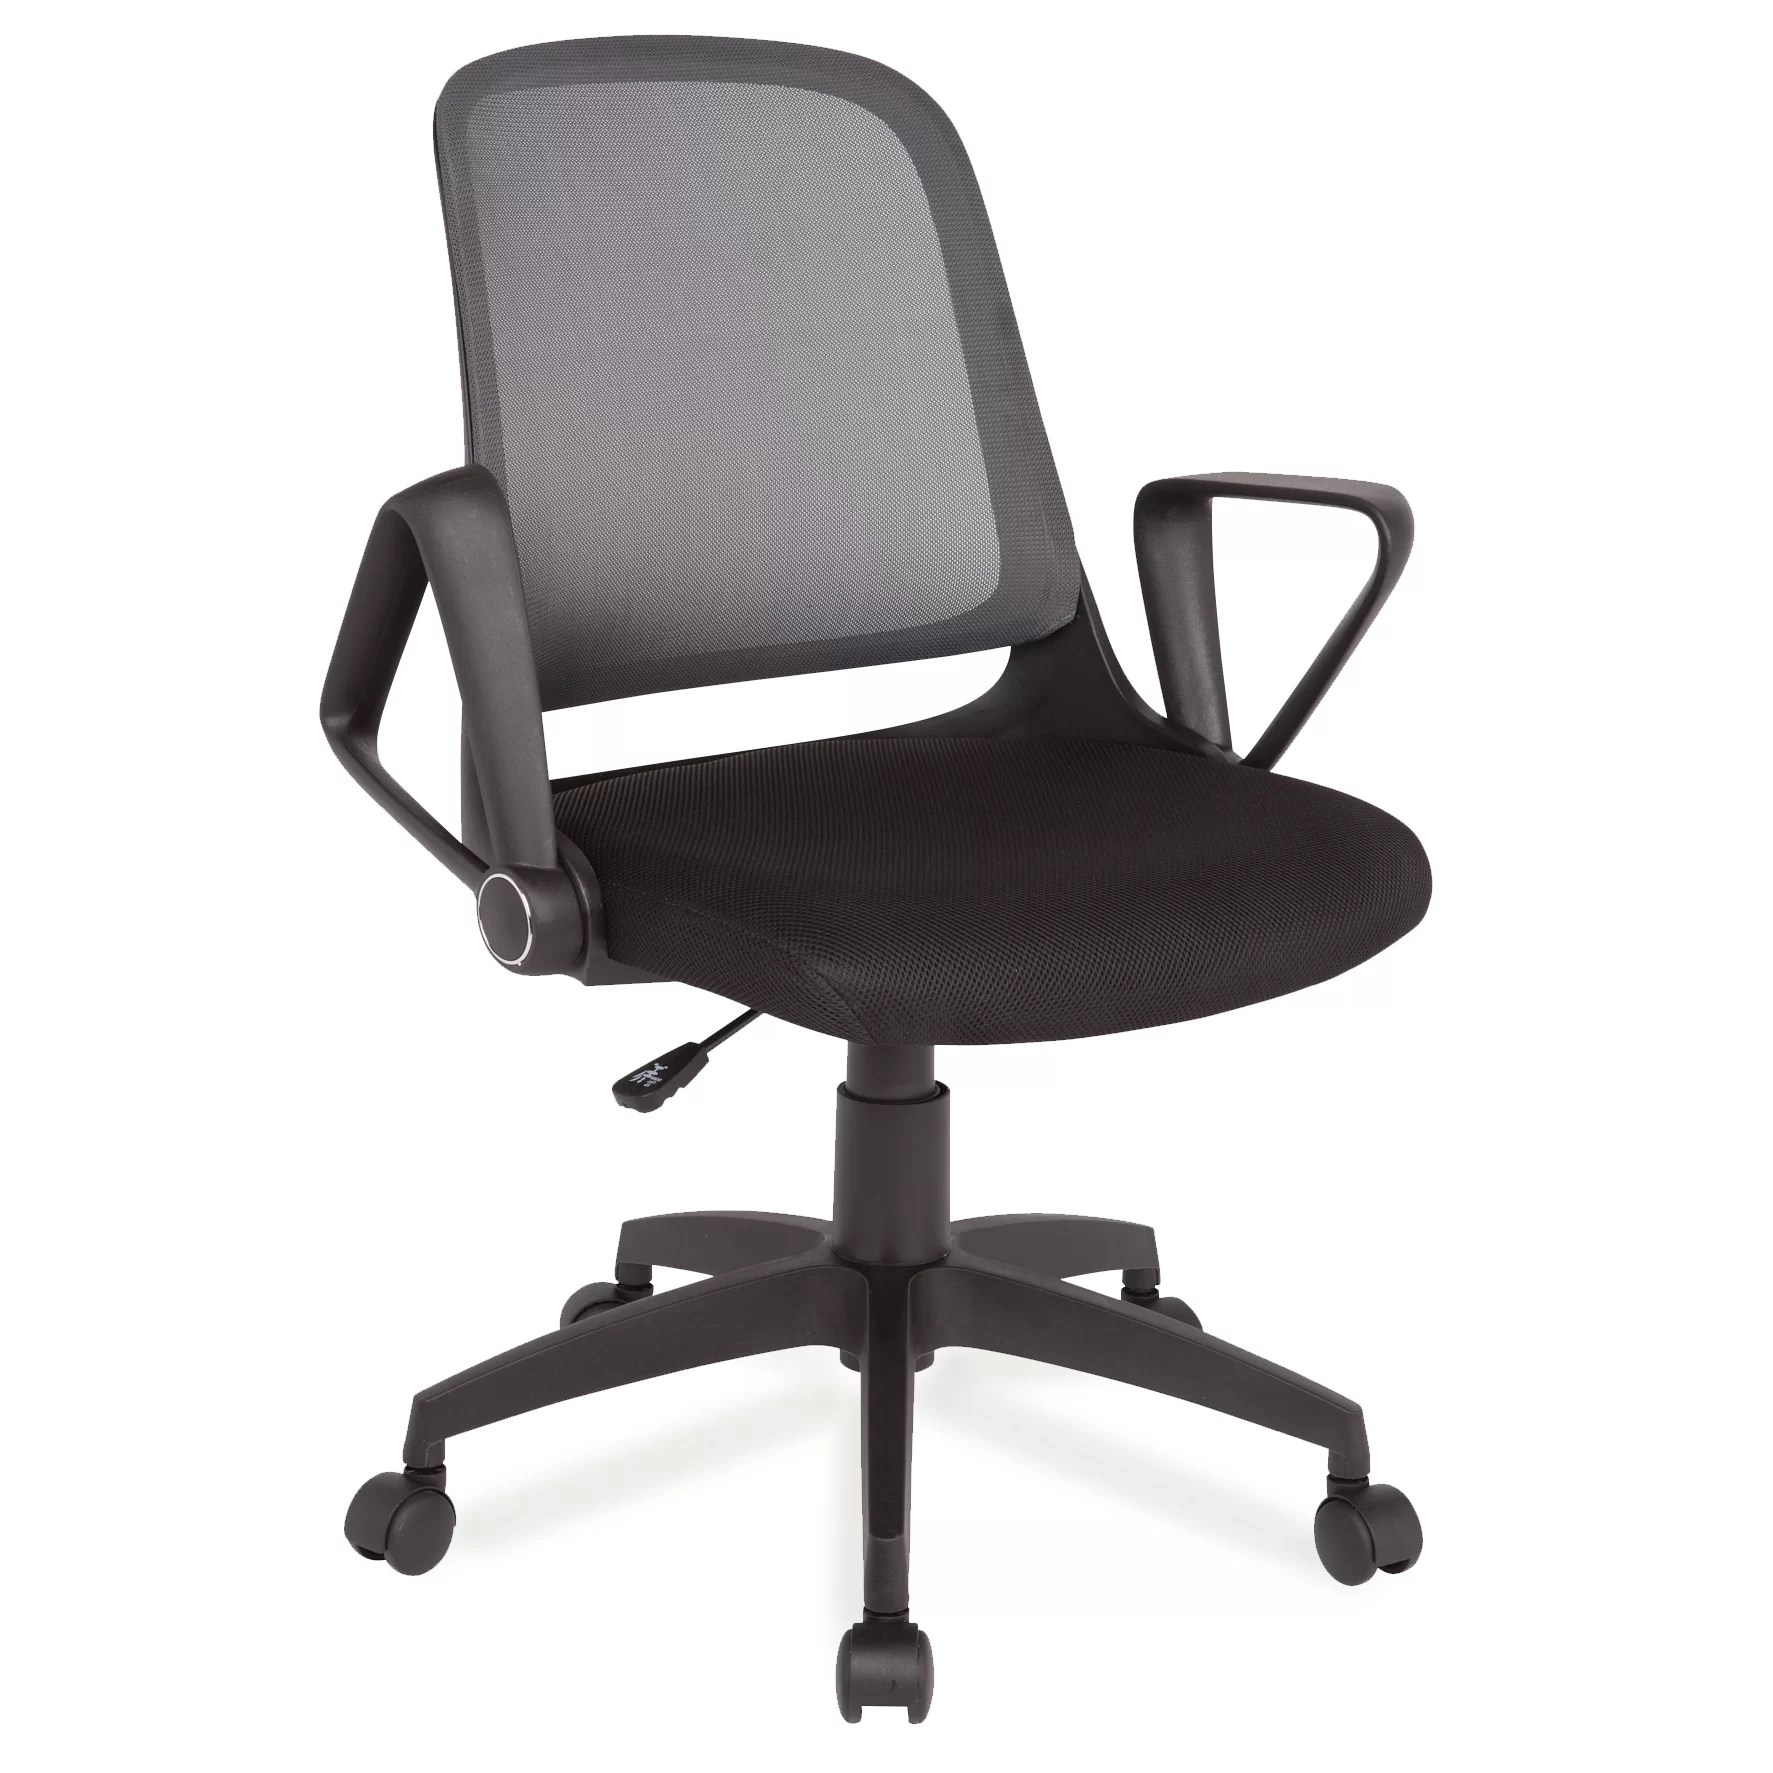 Office Chair With Arms Leick High Back Mesh Office Chair With Arms And Reviews